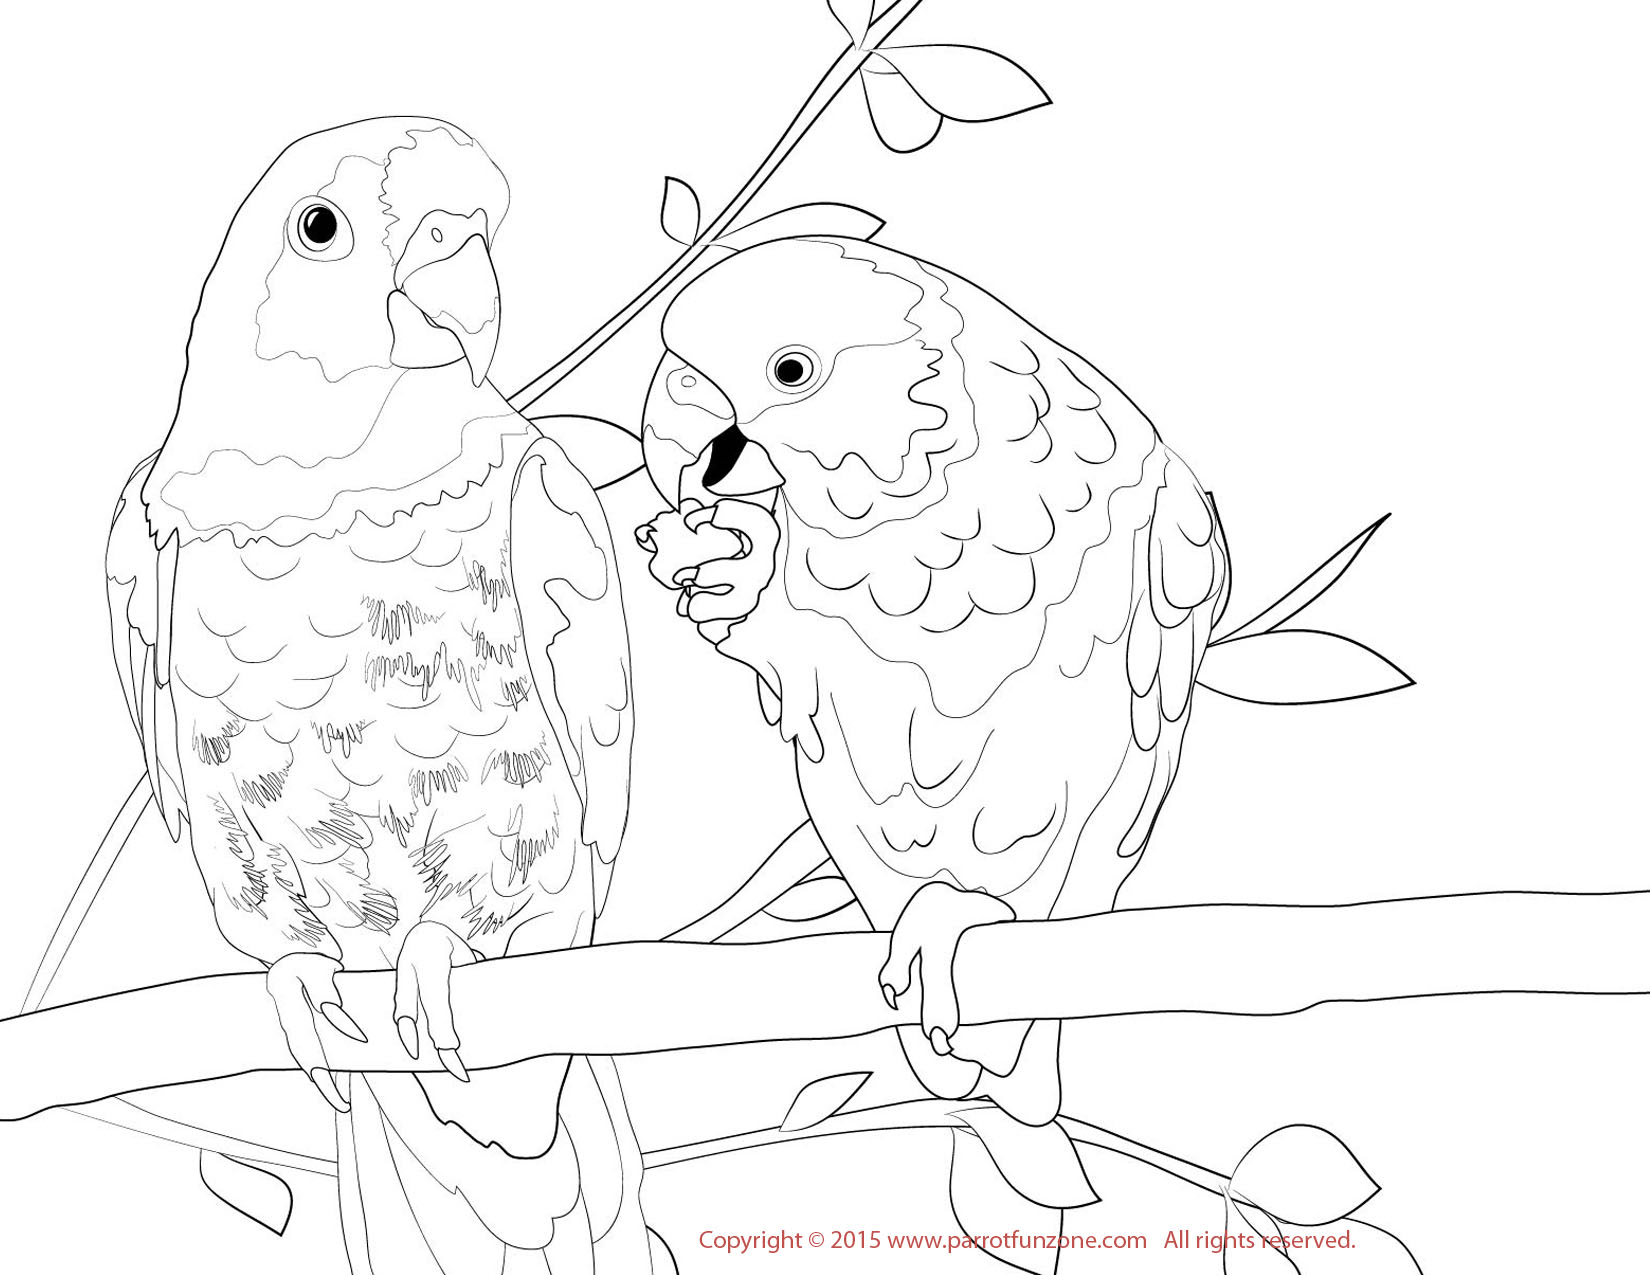 Scarlet macaw drawing at free for for Scarlet macaw coloring page